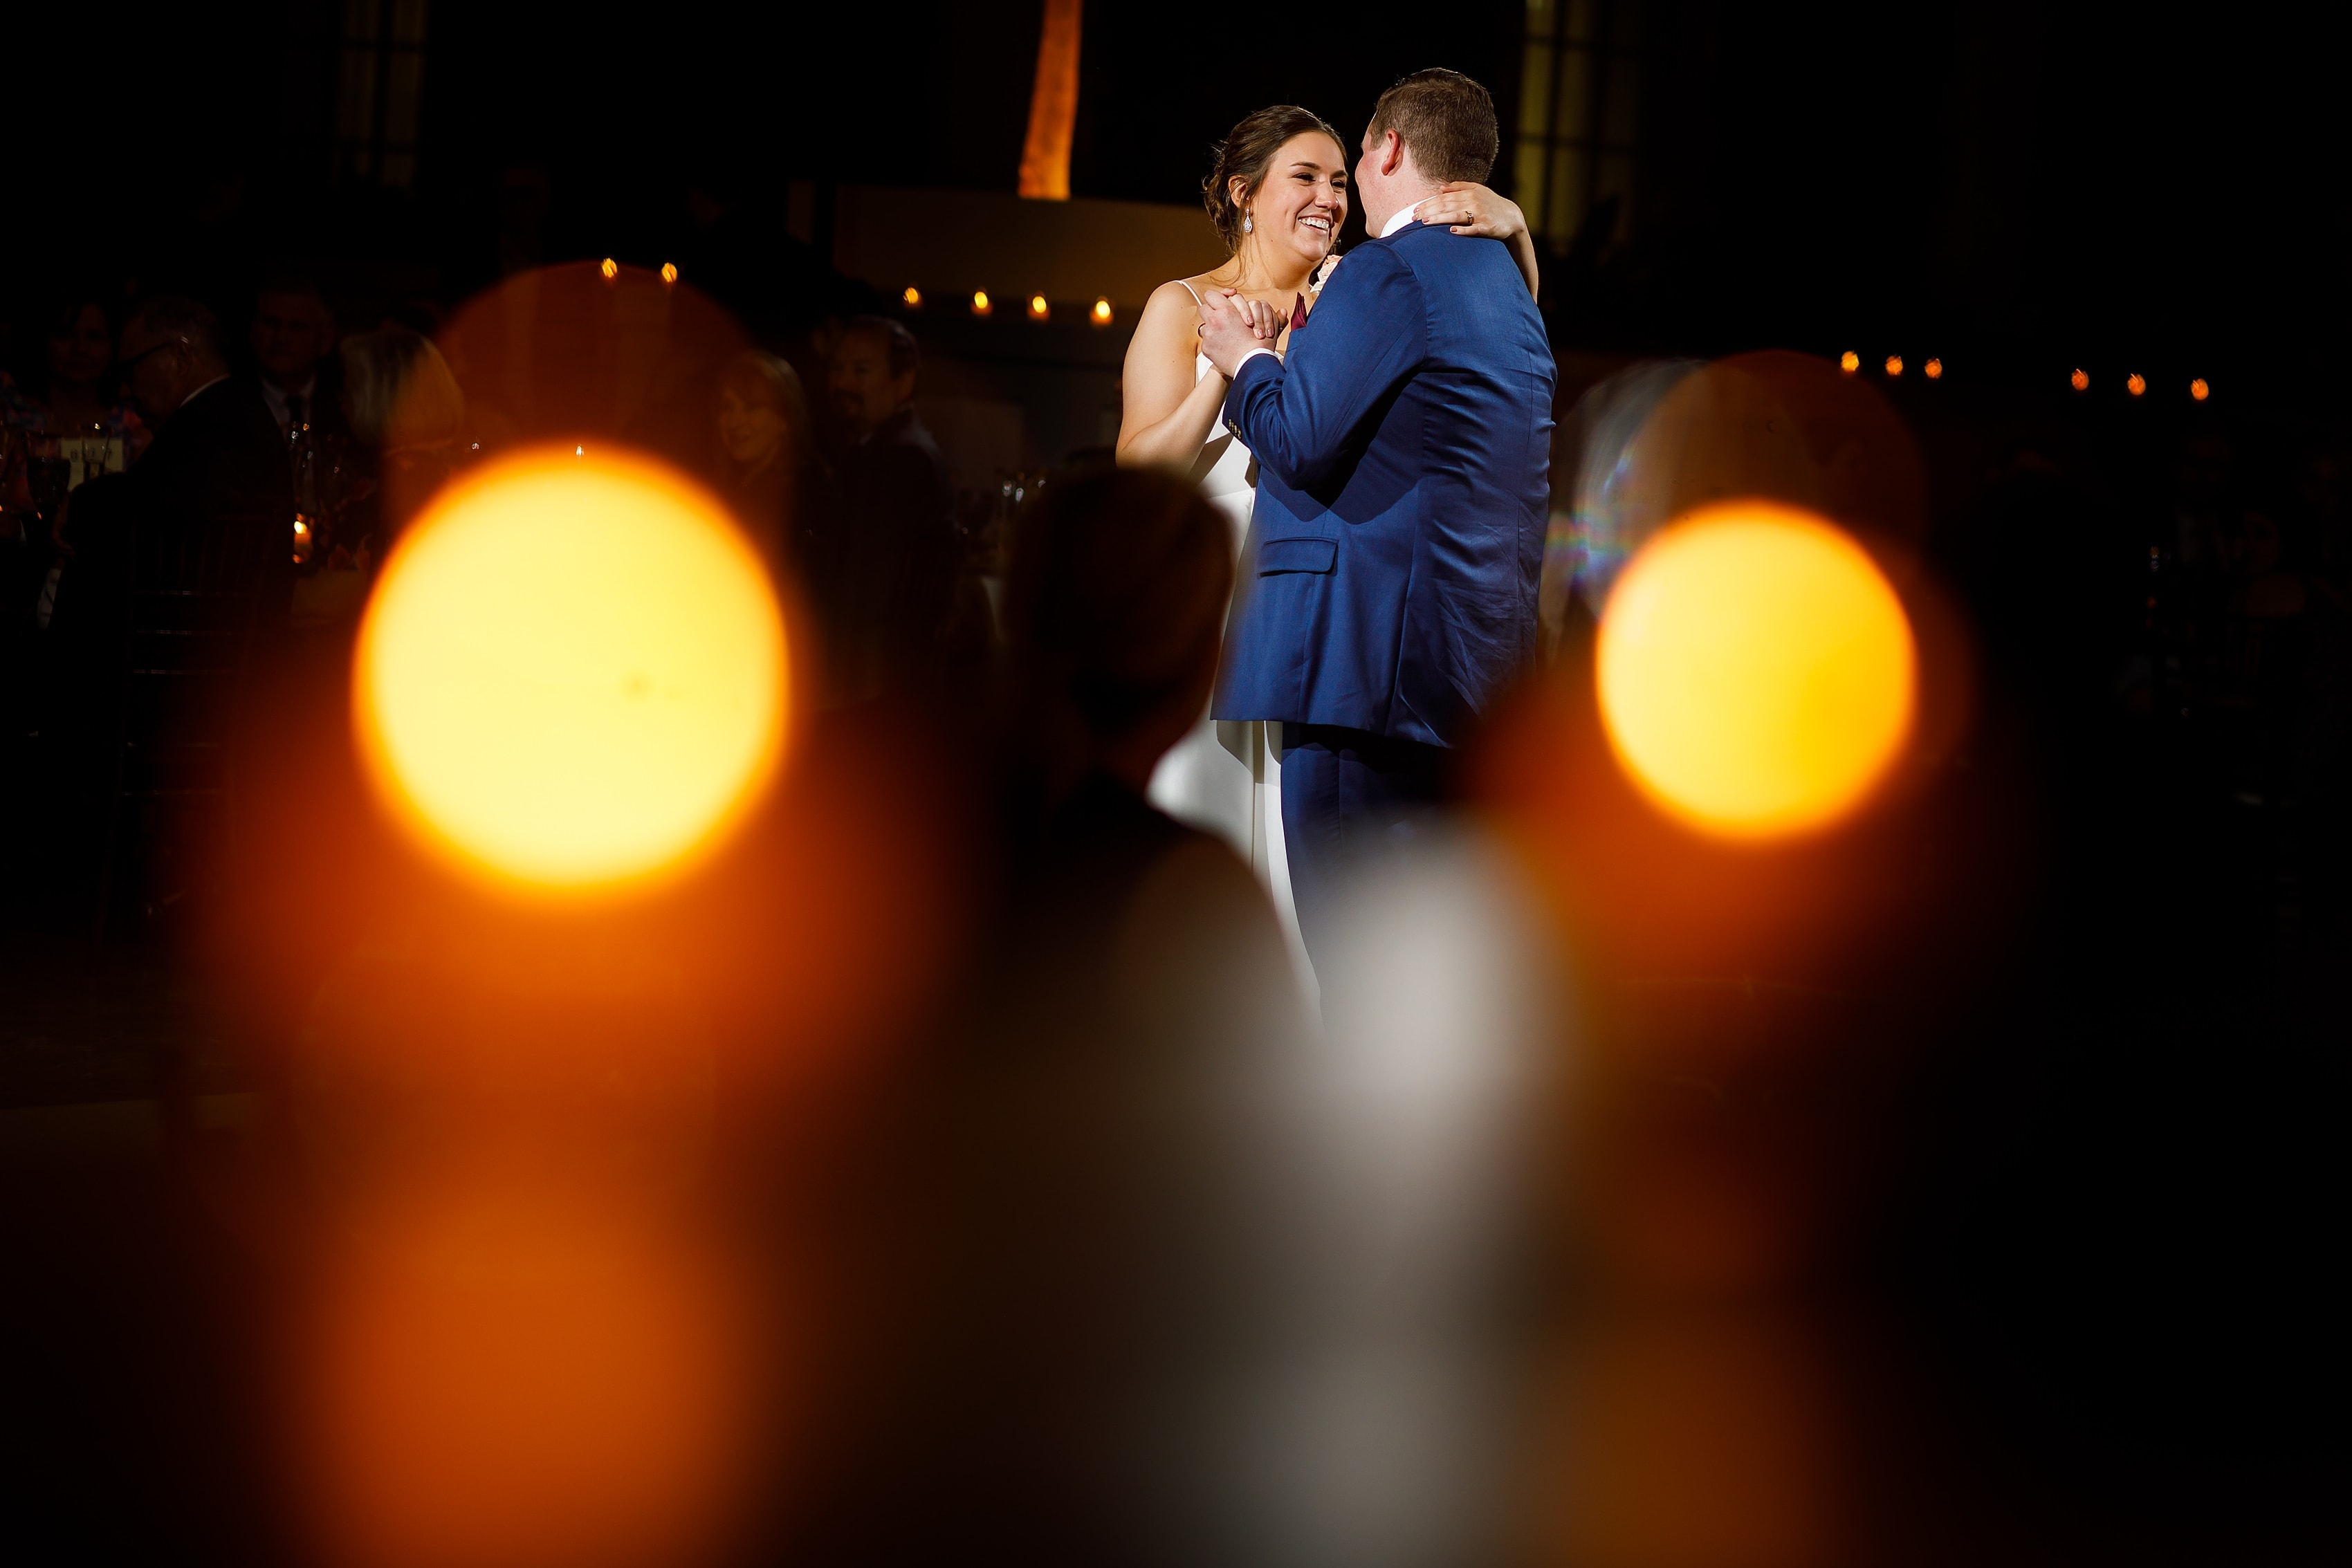 Bride and groom first dance during wedding reception at Harold Washington Library